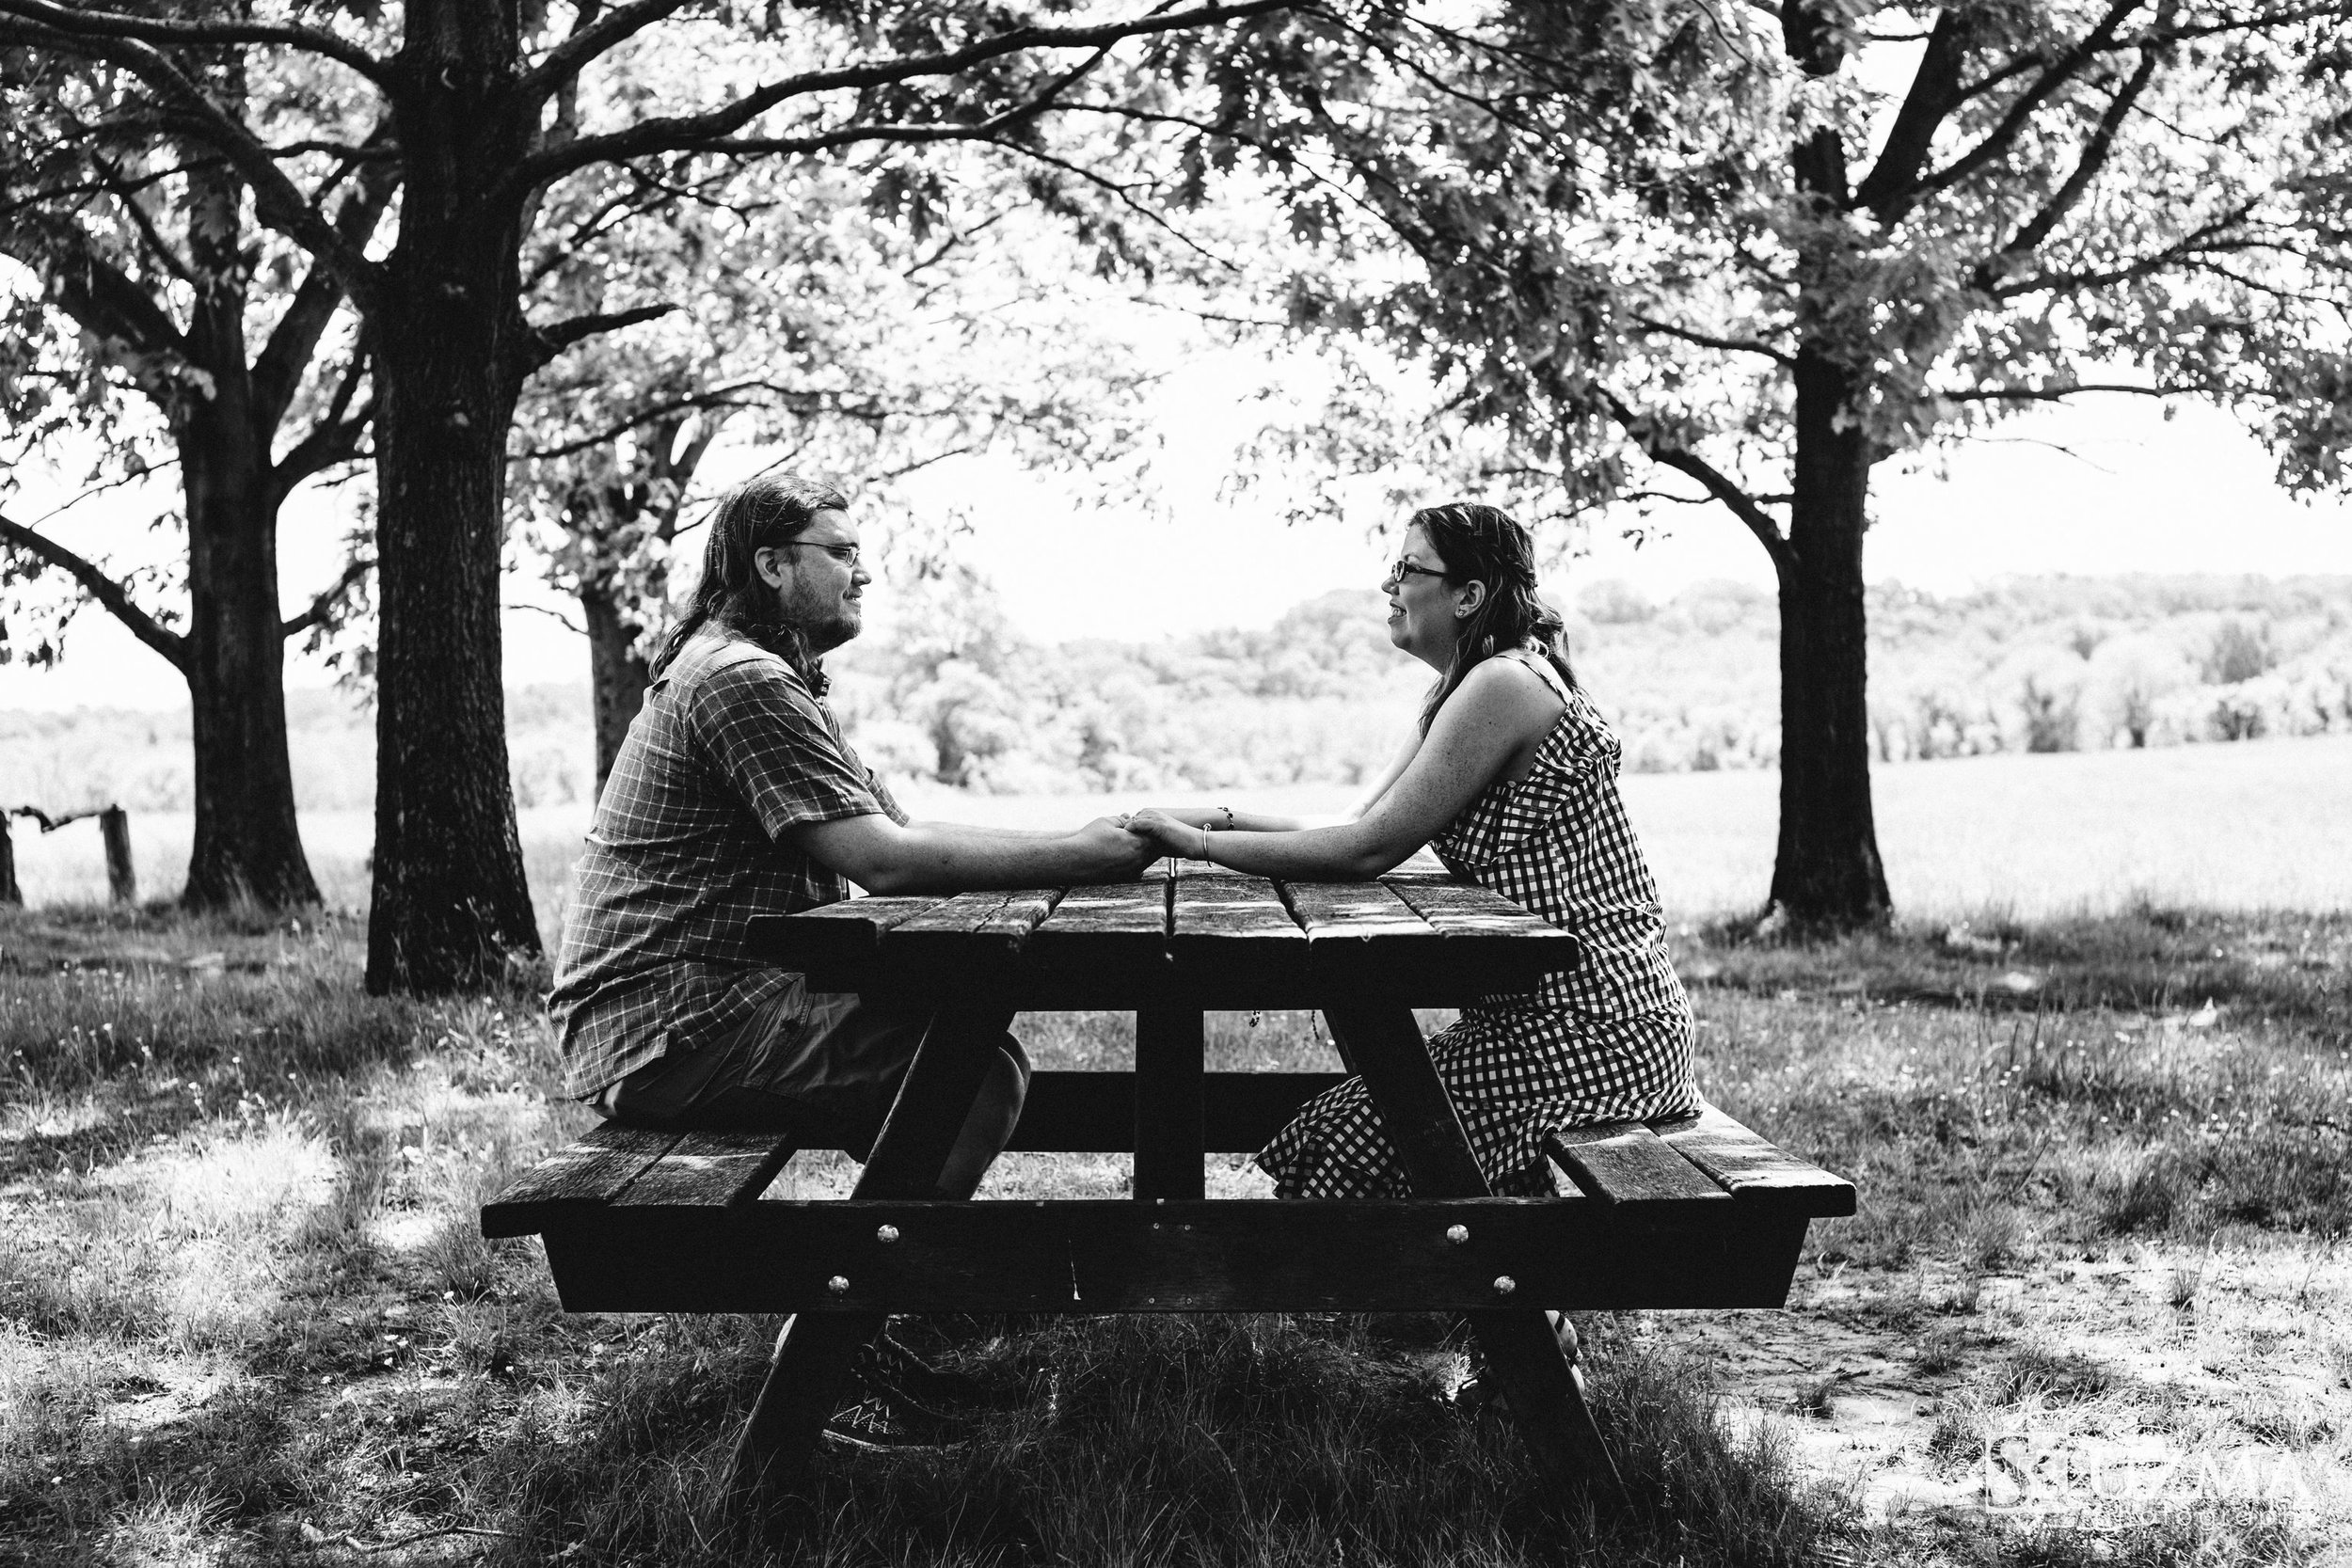 Liz and Andrew on a park bench